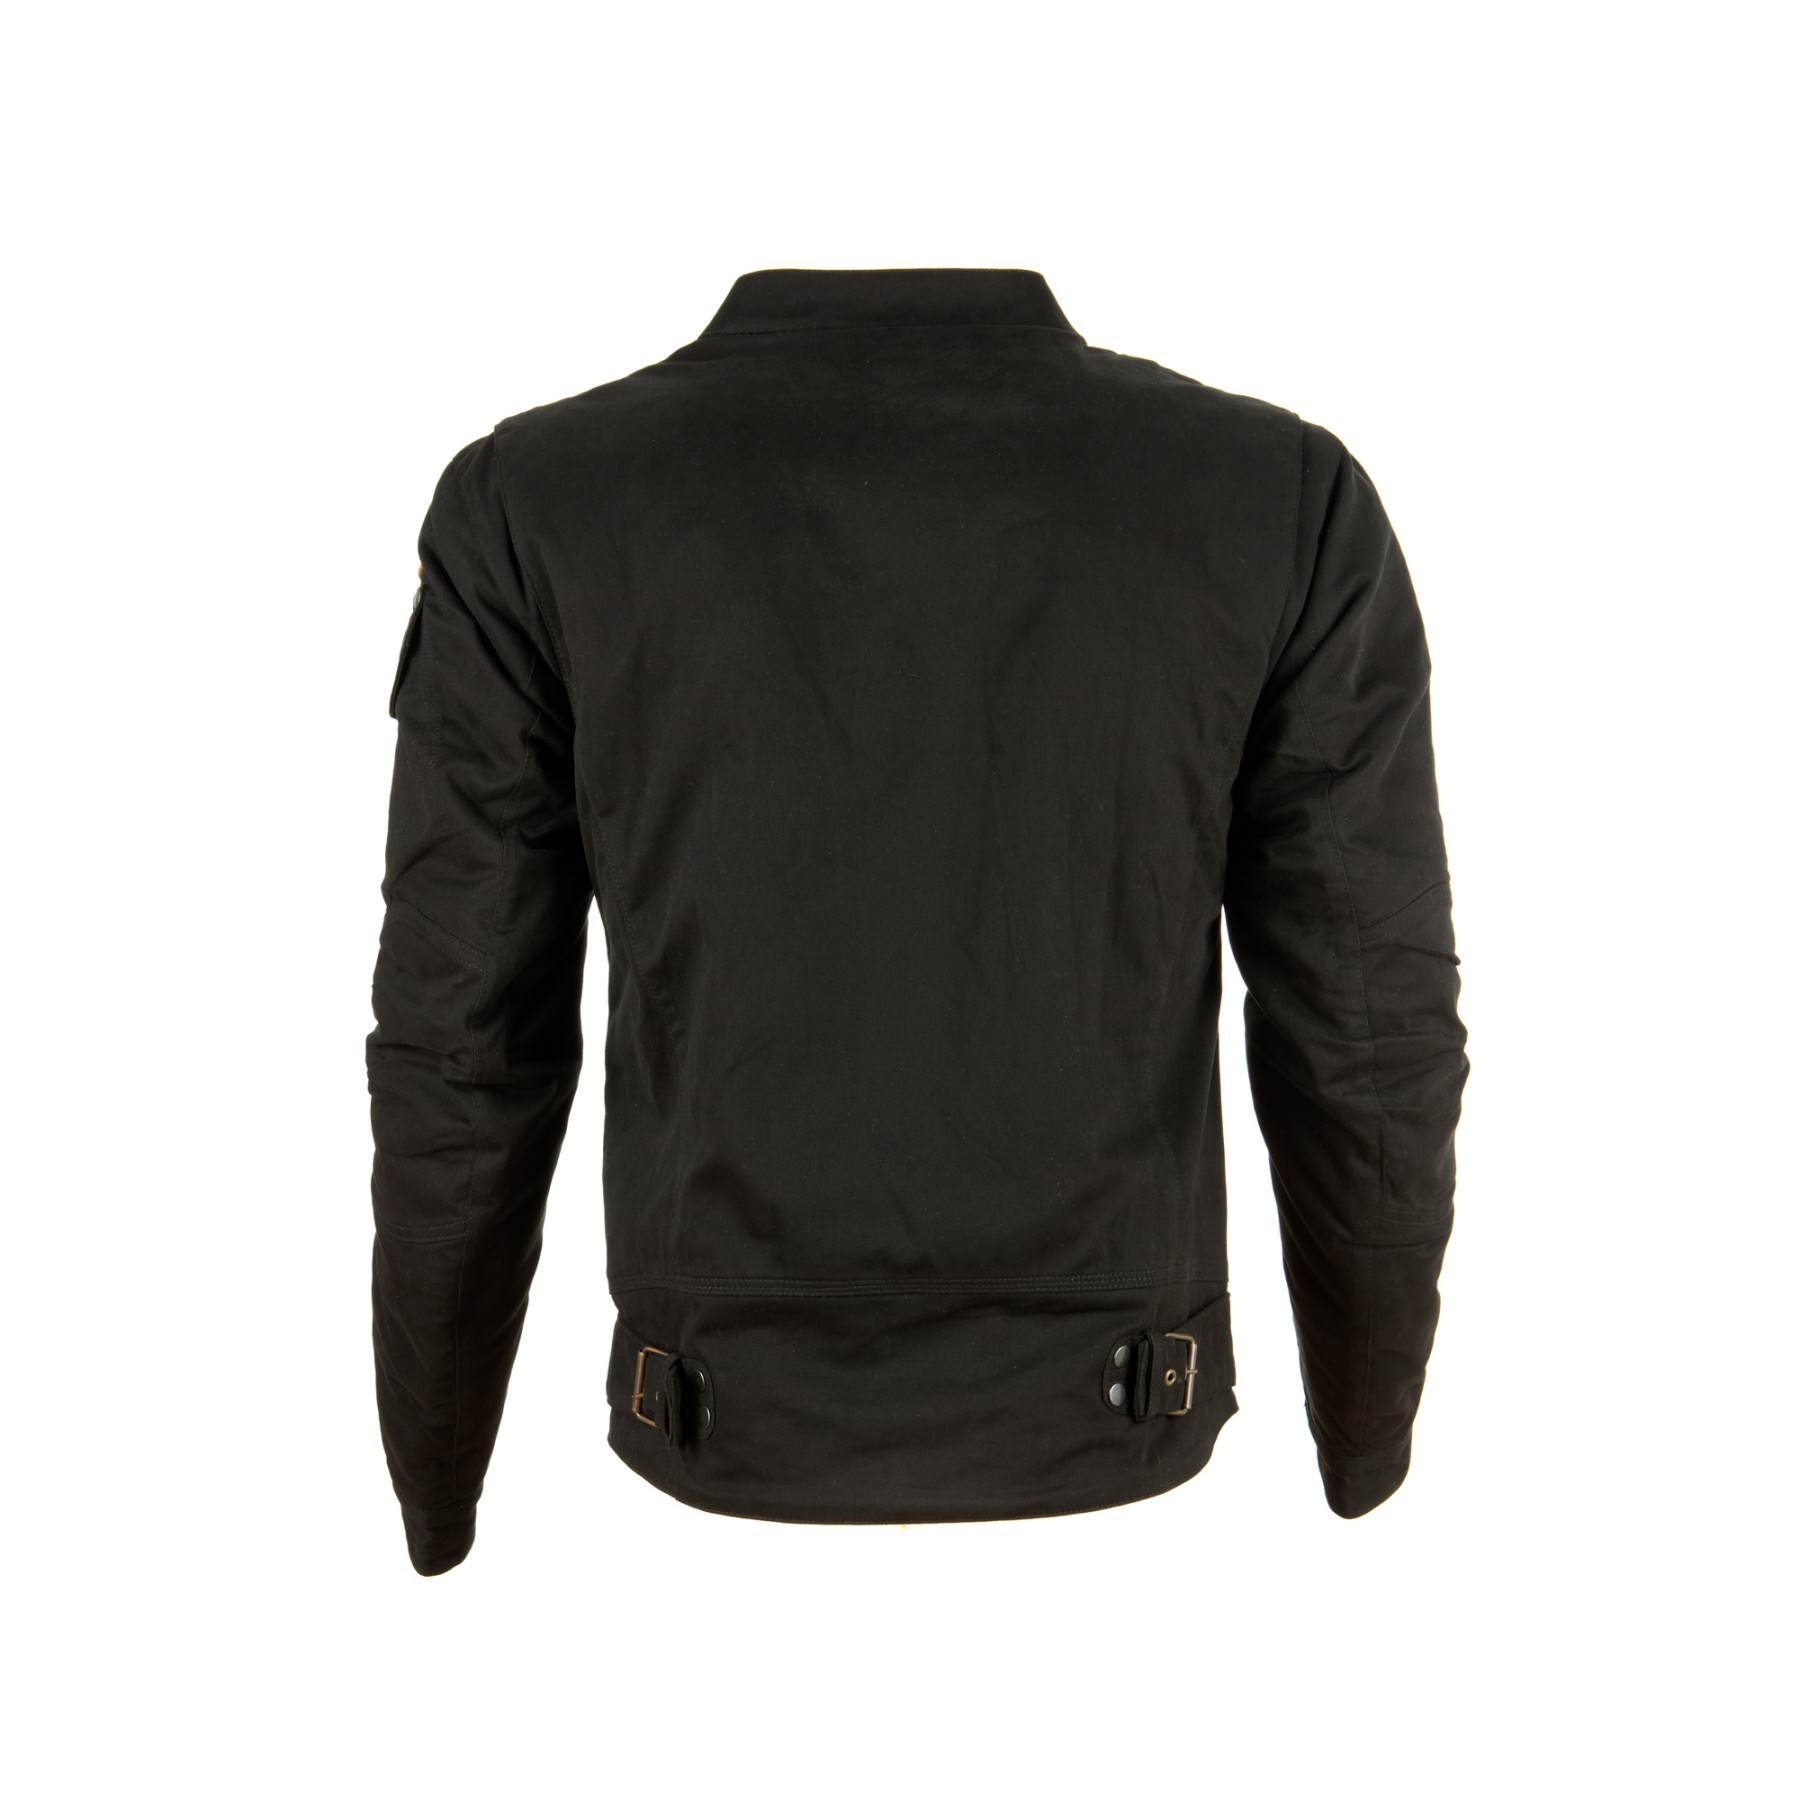 Leather clipart black jacket Gear Fashions Resurgence of Images